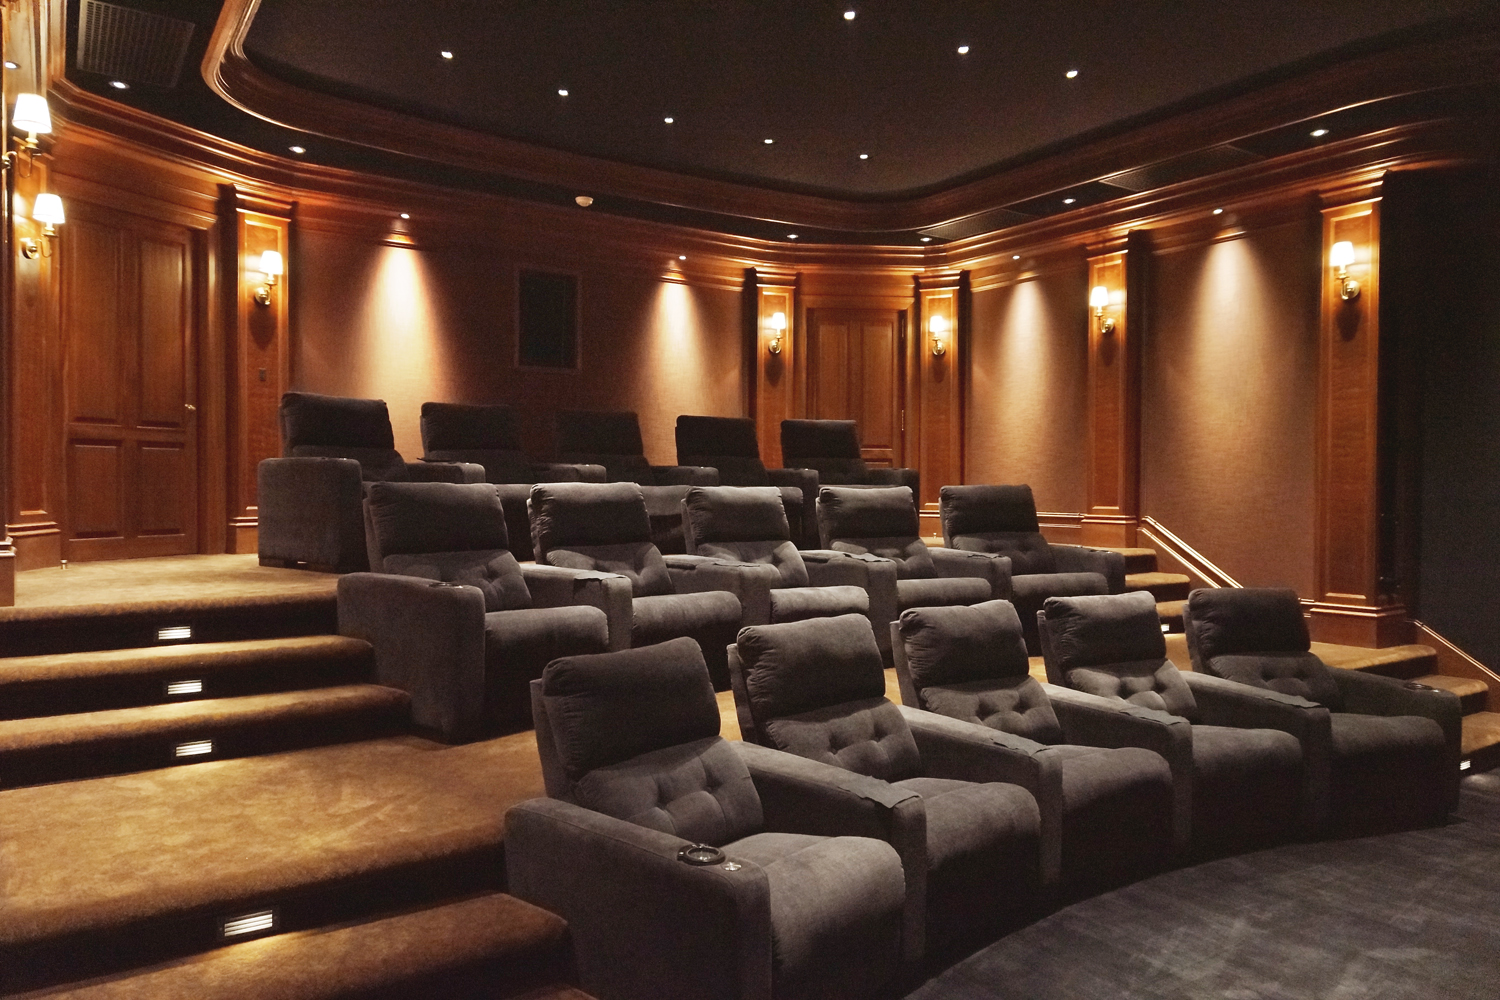 Home-theater-soundproofing-wood-paneling-ct-interior-w.jpg